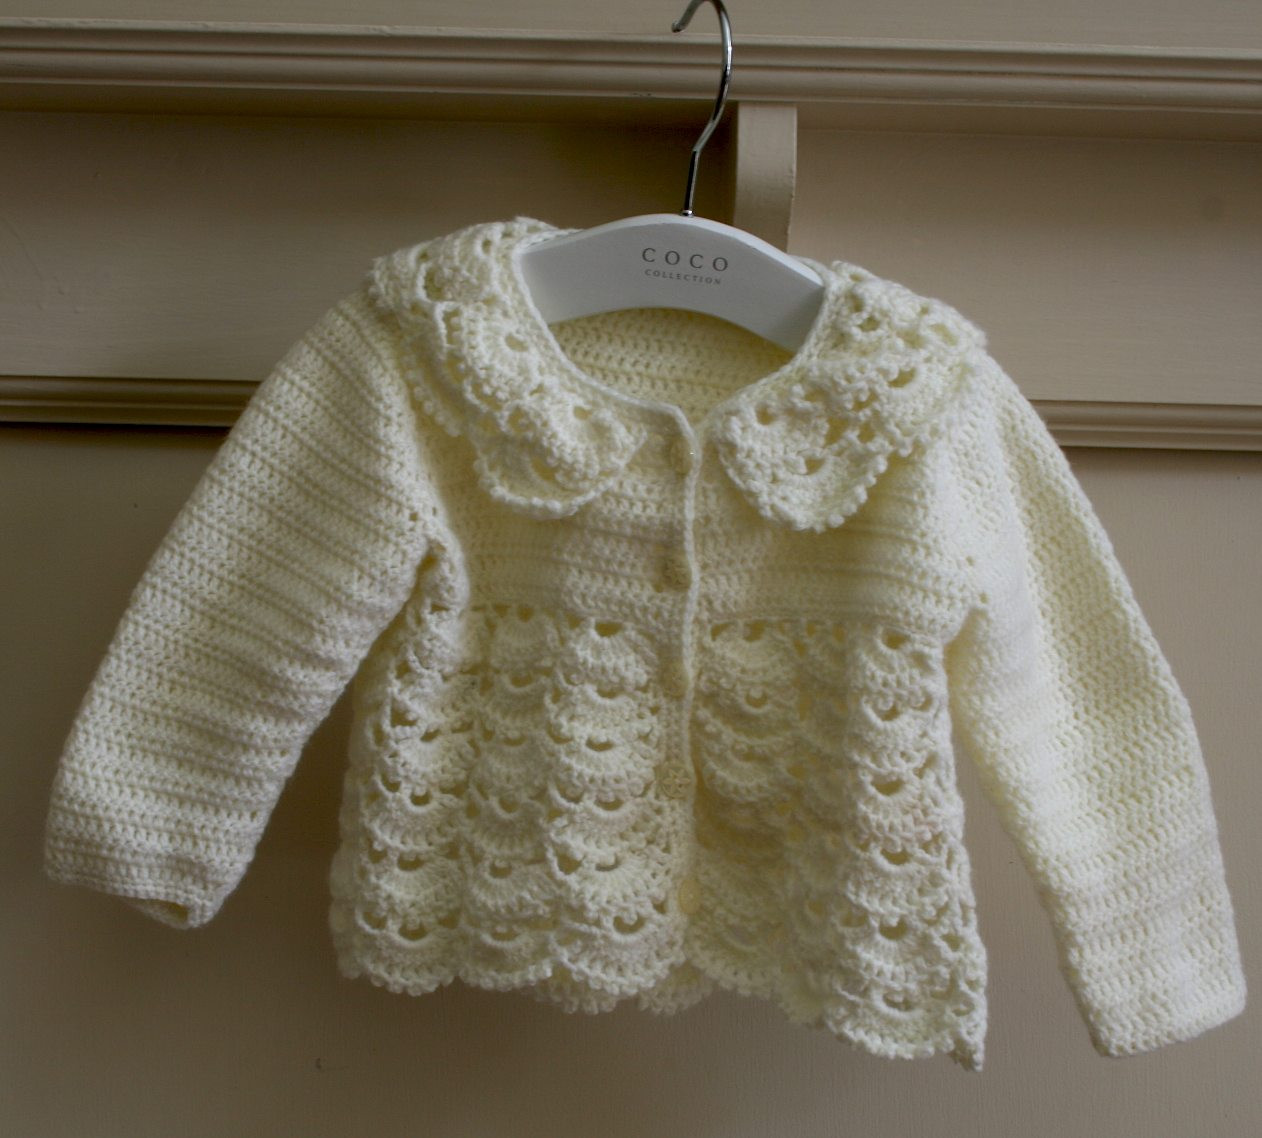 Crochet Sweaters New Crocheted Lacy Baby Cardigan Of Fresh 50 Images Crochet Sweaters